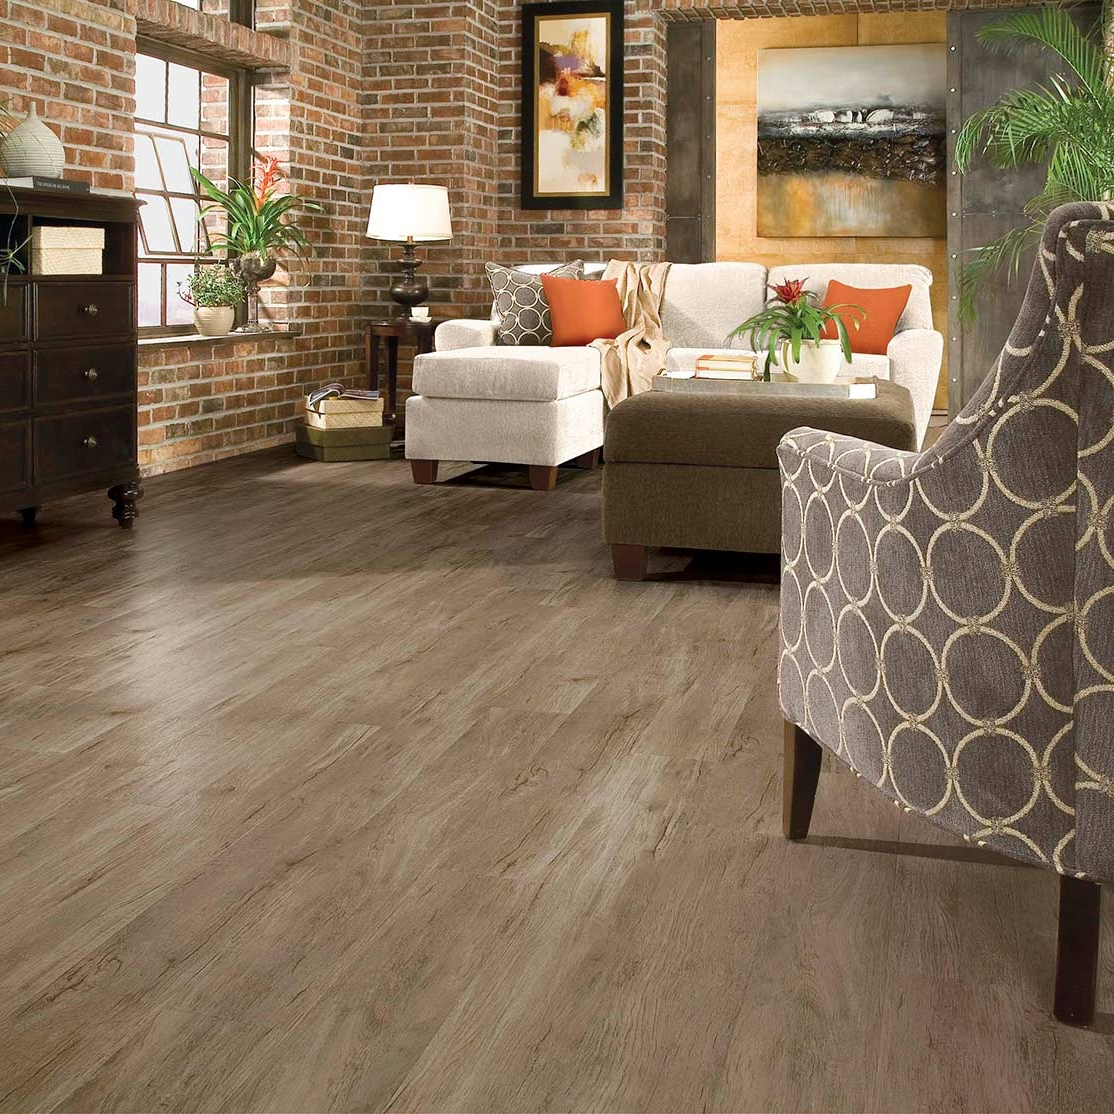 Luxury-Vinyl-Plank-Wood-Look.jpg